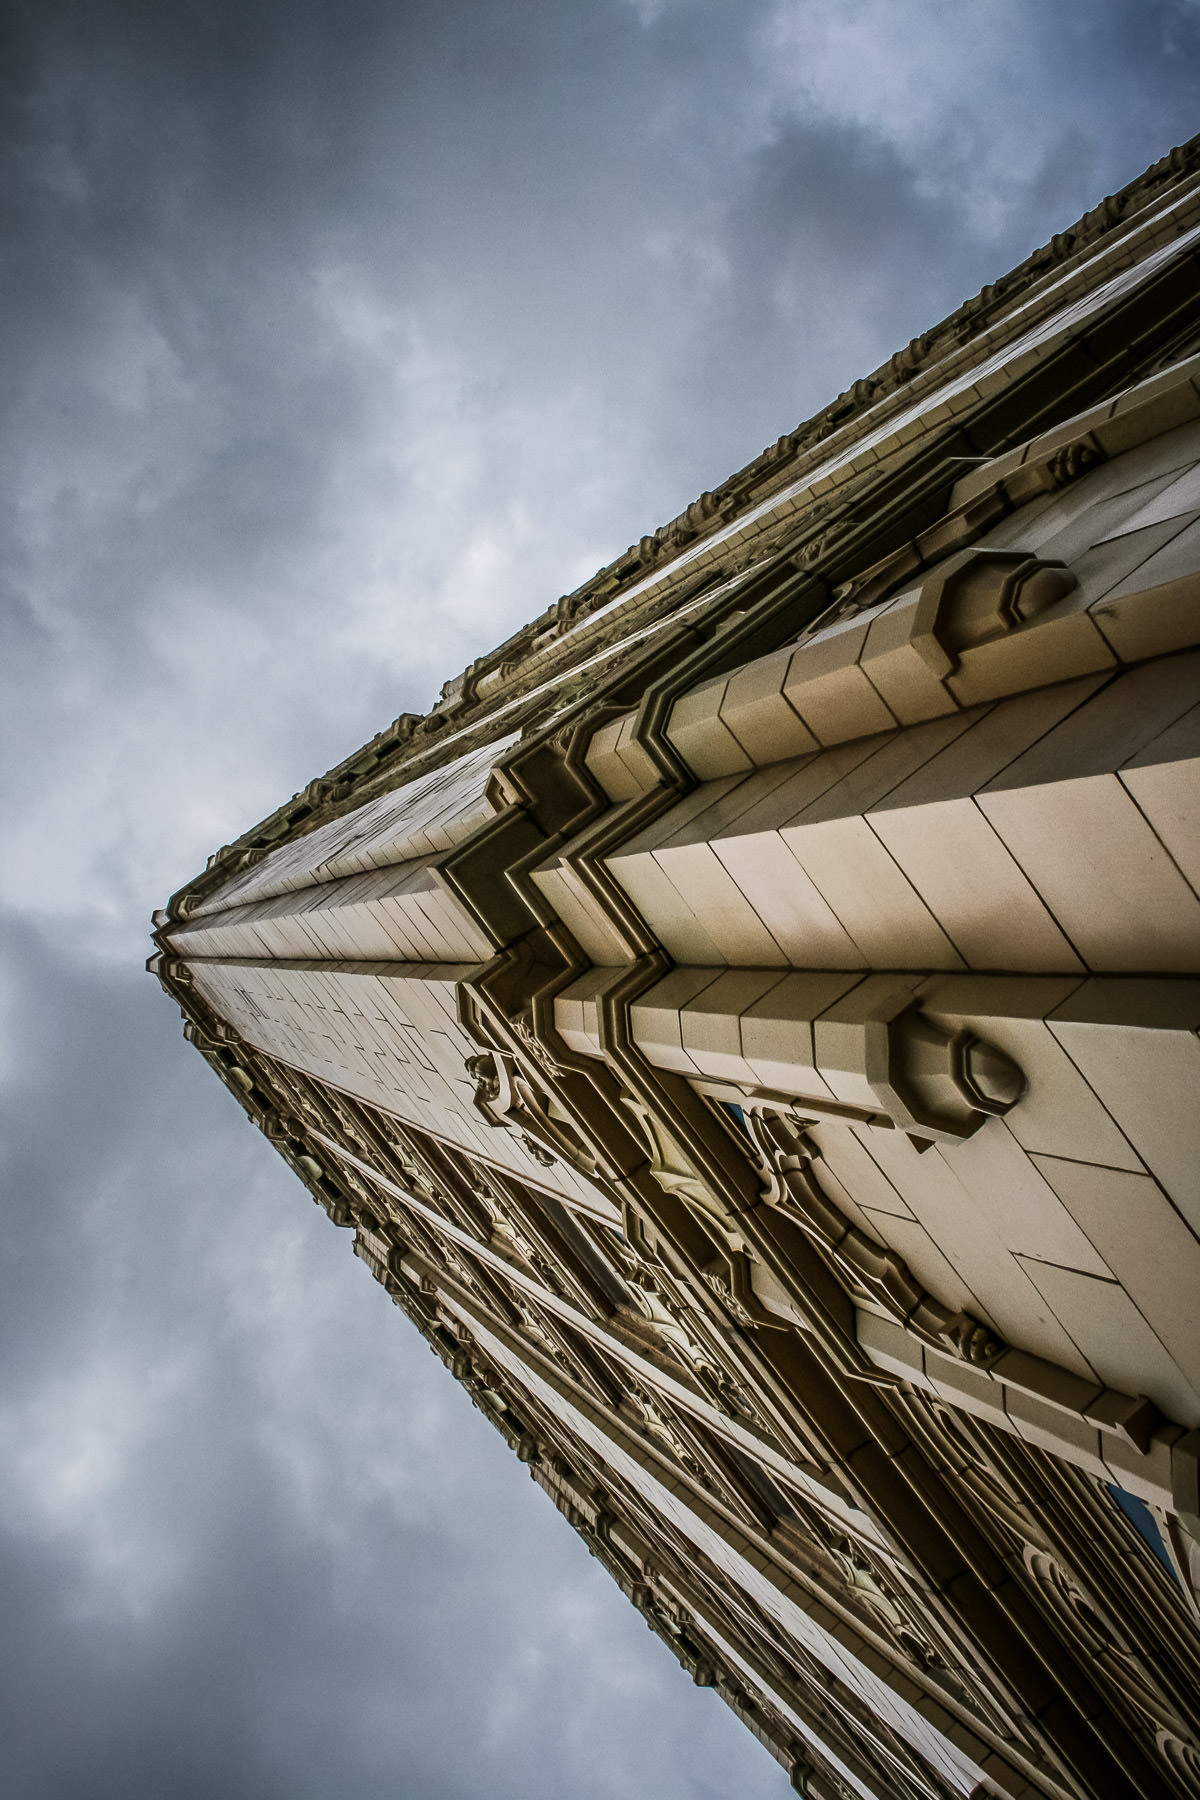 Exterior detail of Chase Bank in Corsicana, Texas, as a storm rolls in.